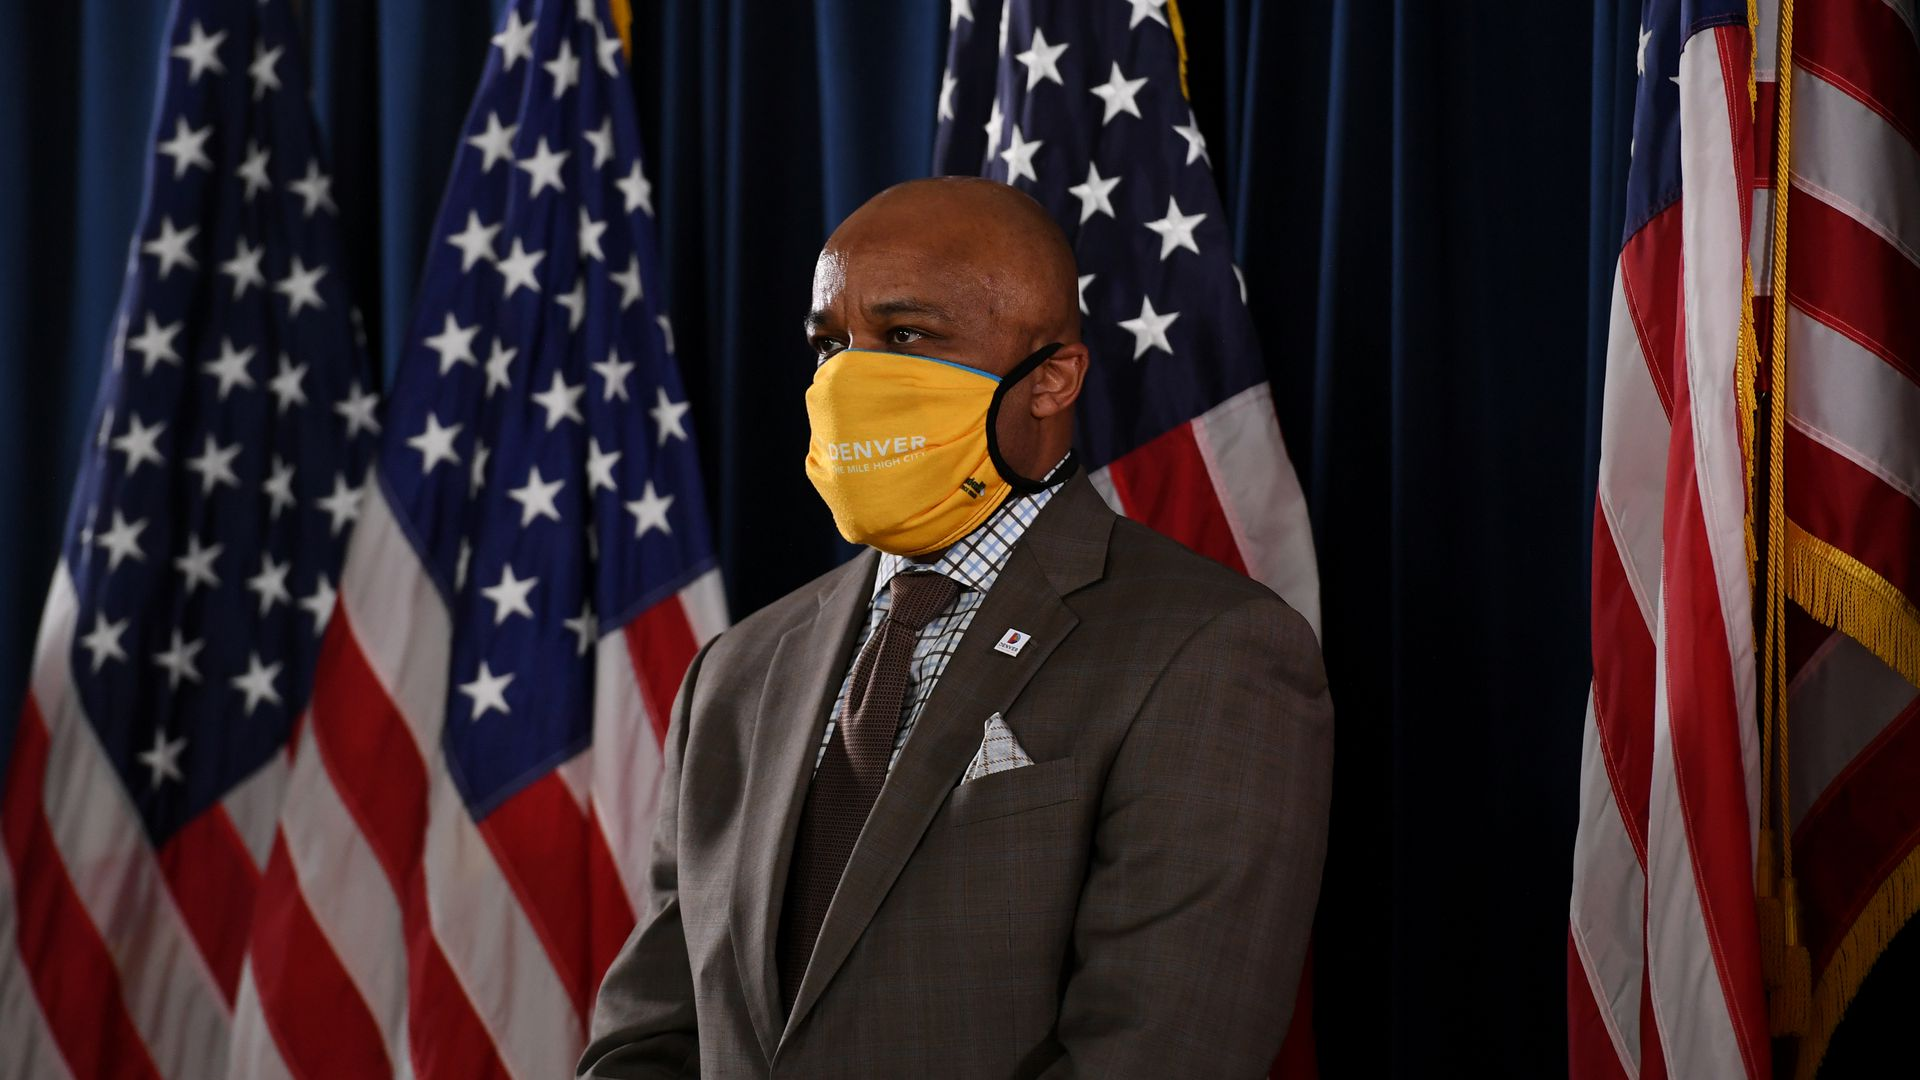 A photo of Denver Mayor Michael Hancock wearing a mask and standing in front of several American flags.